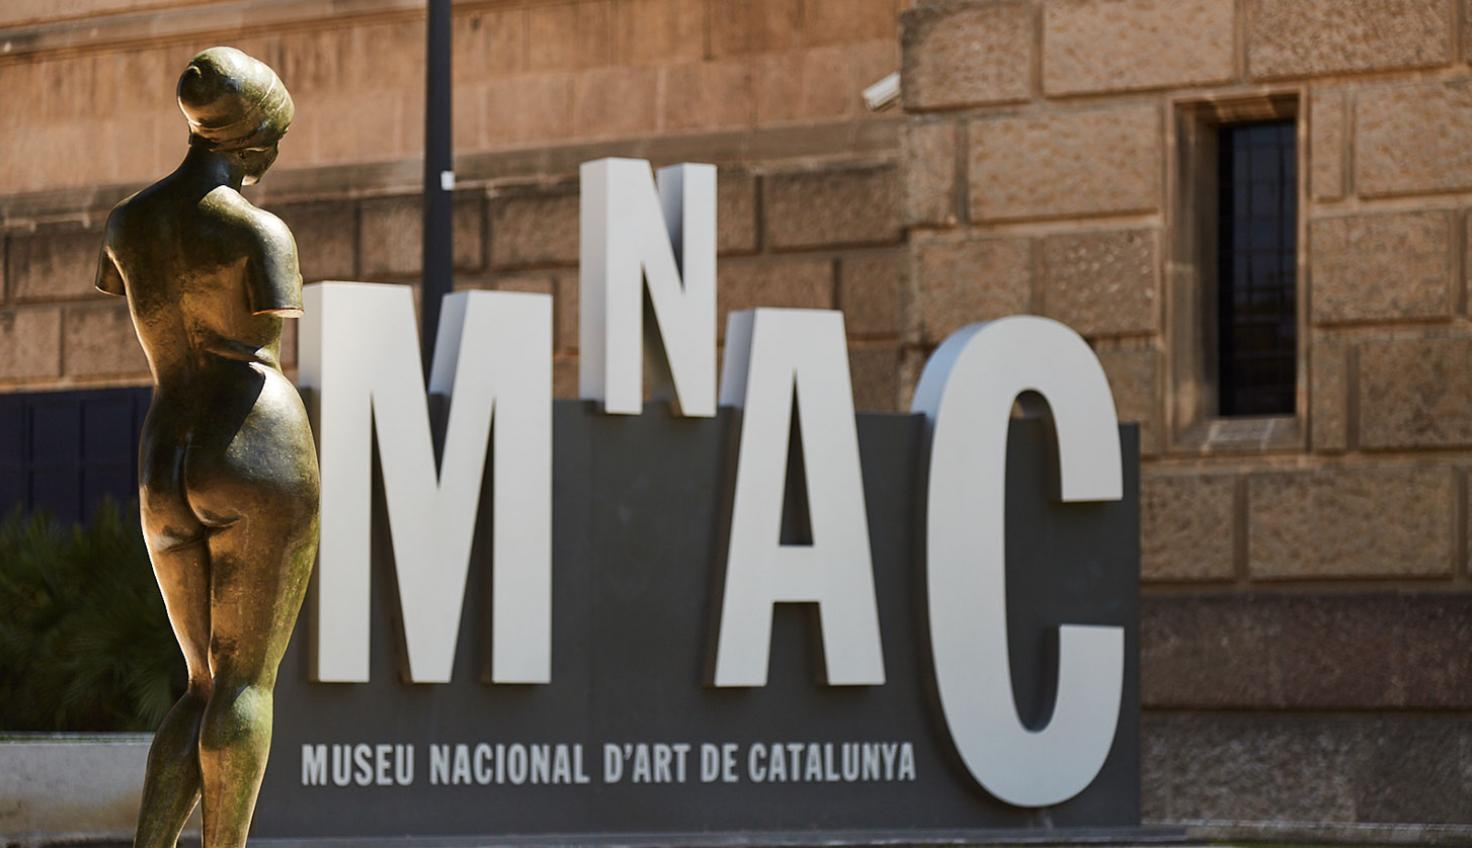 Catalan art and culture